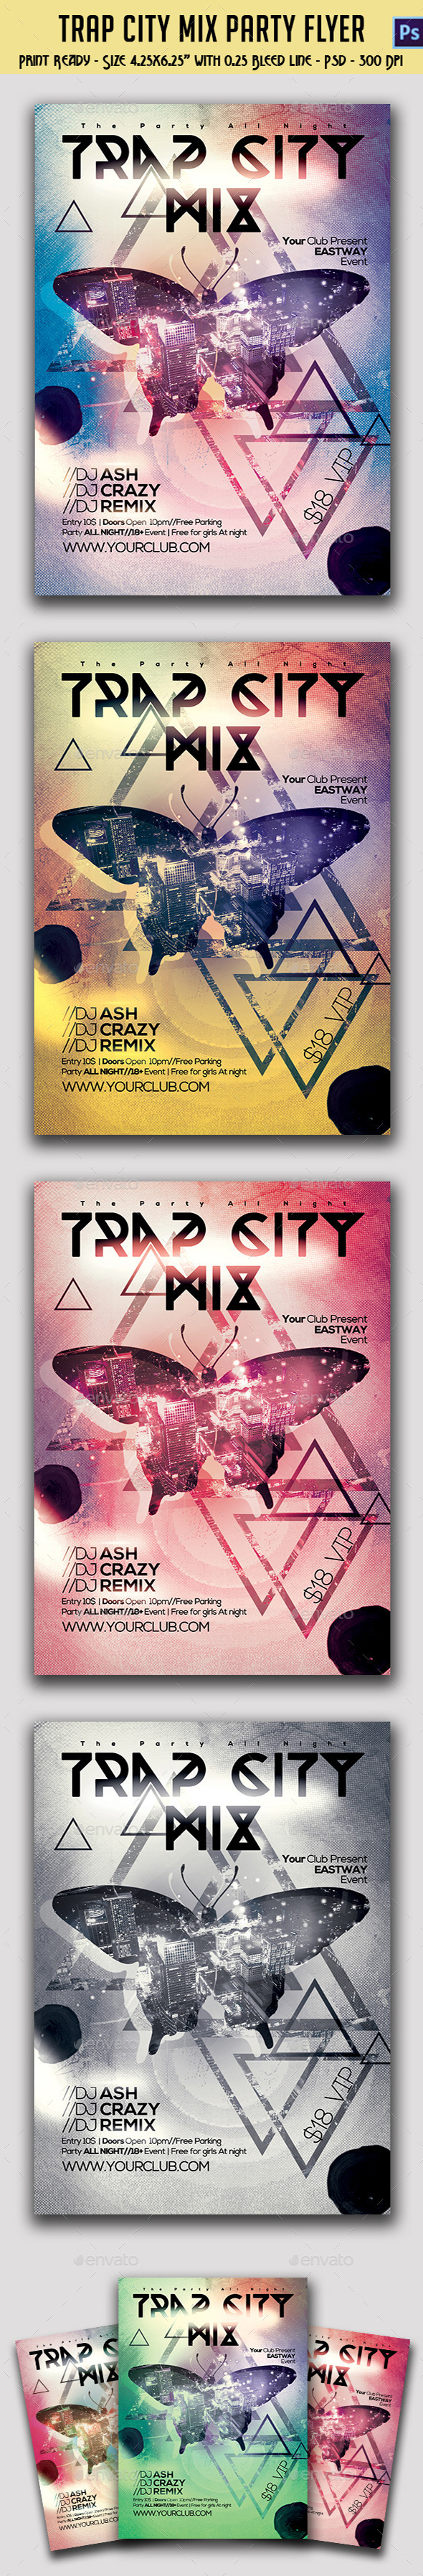 Trap City Mix Party Template - Clubs & Parties Events